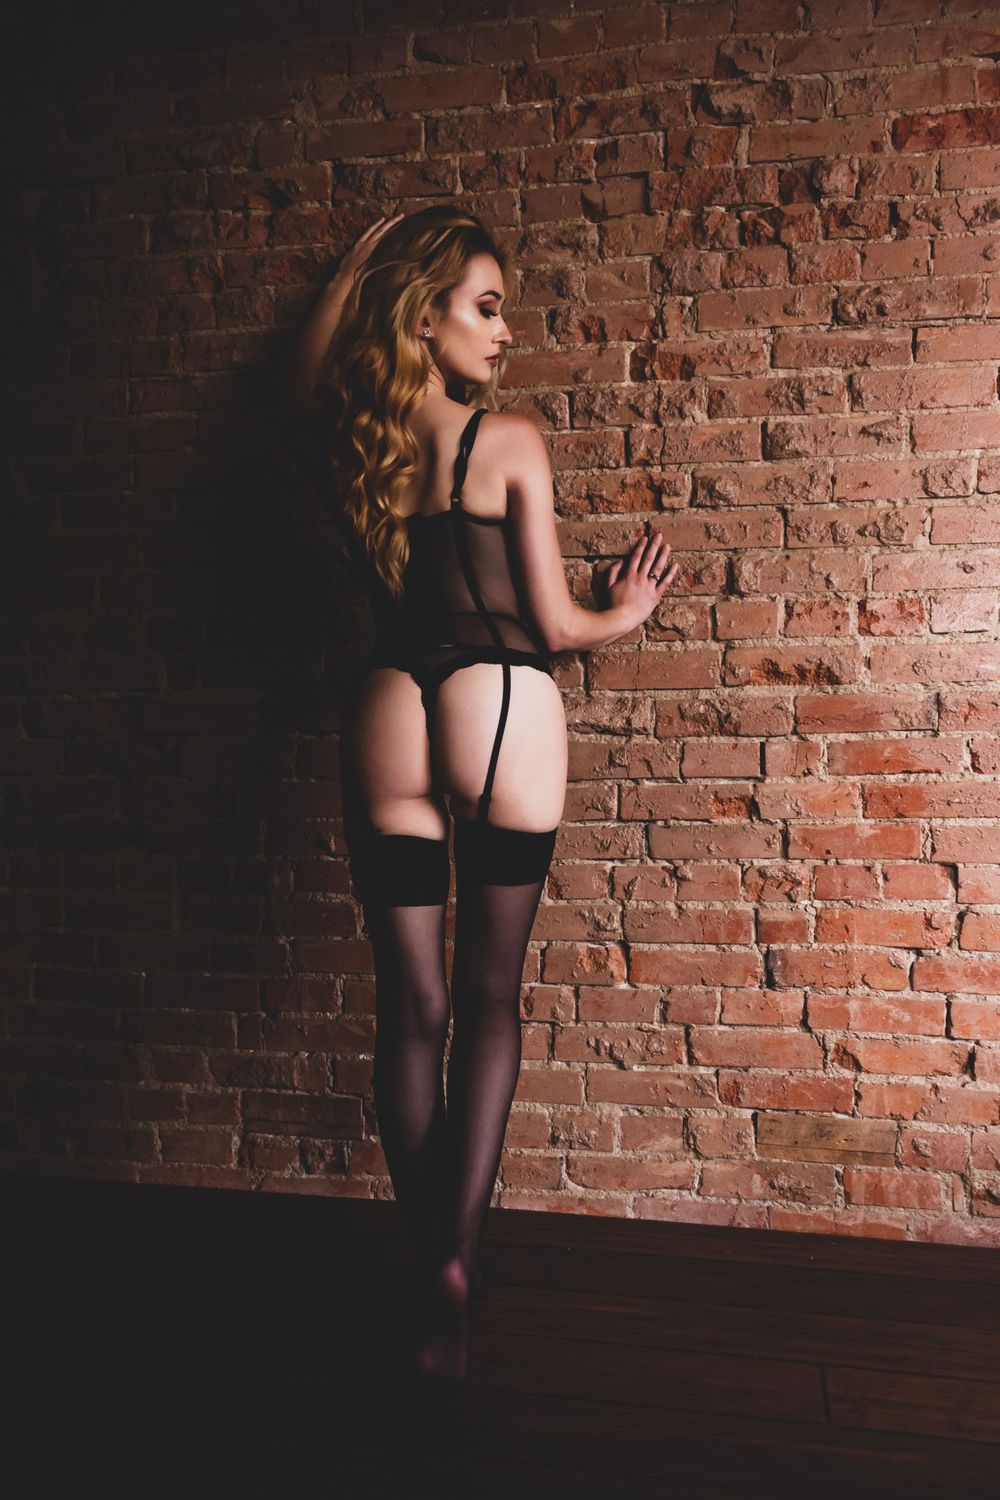 BLONDE CHICK IN BLACK LINGERIE LEANING AGAINST A BRICK WALL LOOKING OVER HER SHOULDER AS HER LONG HAIR TUMBLES DOWN